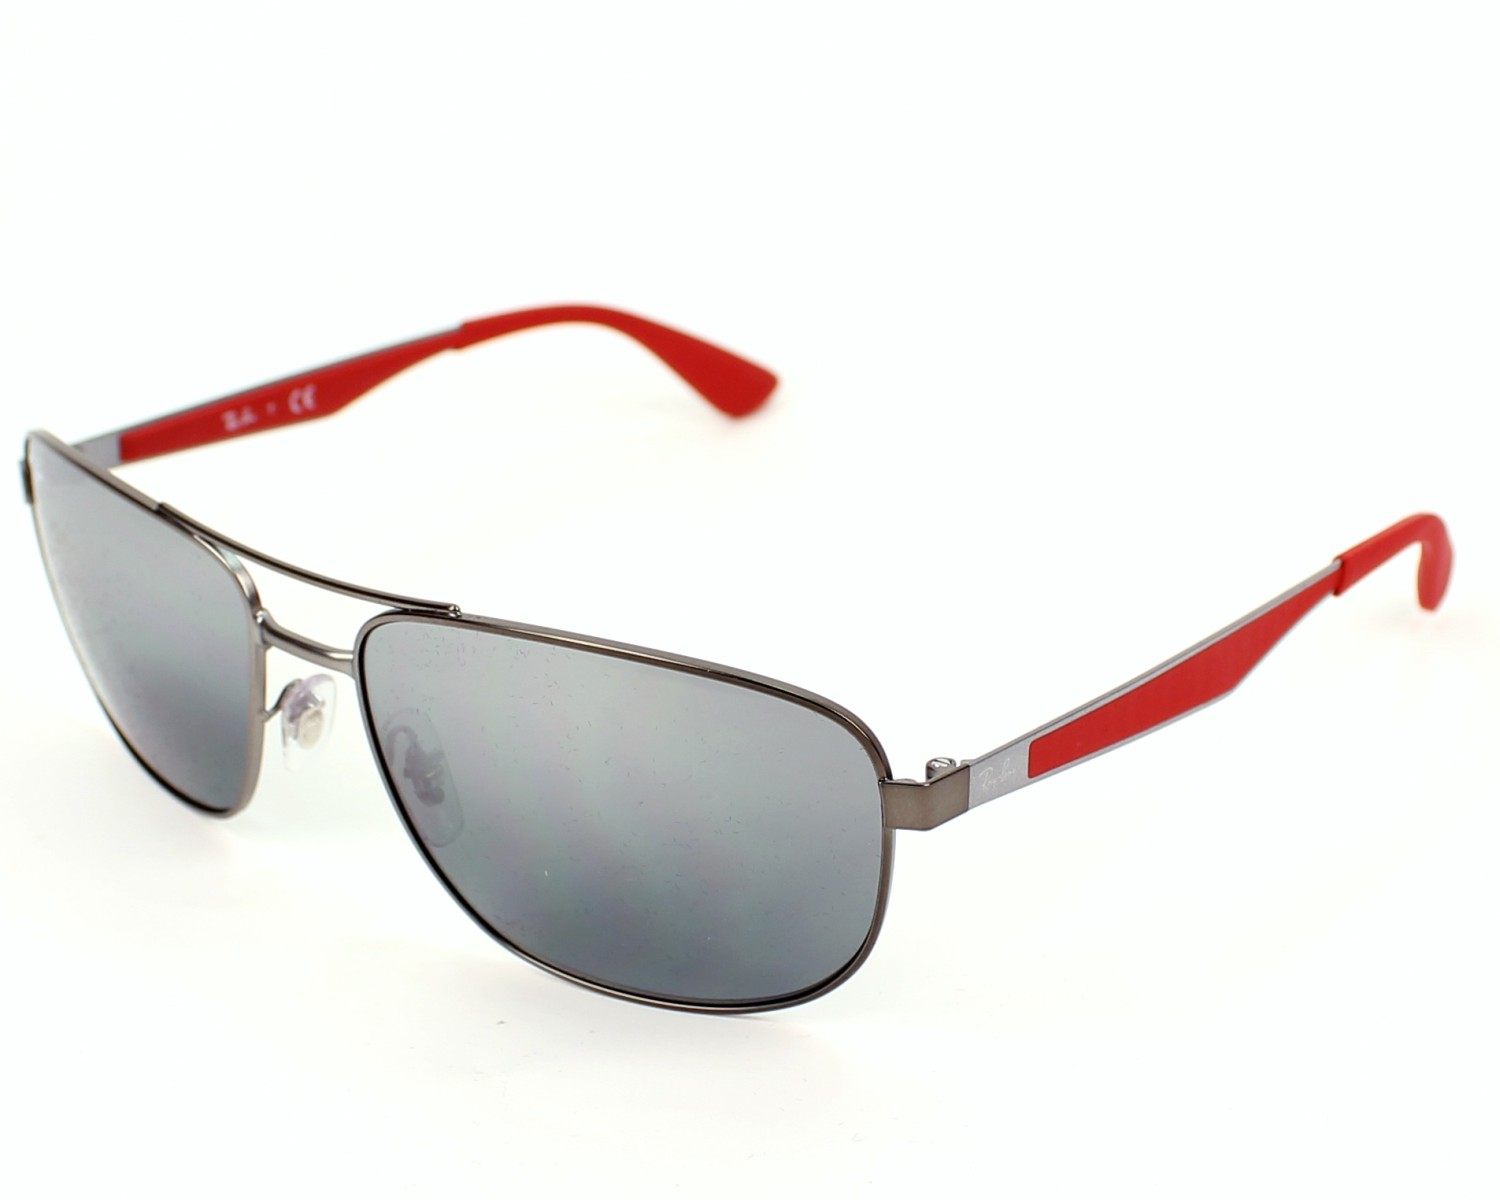 4bfe0f98482 Sunglasses Ray-Ban RB-3528 029 88 58-17 Gun Red profile